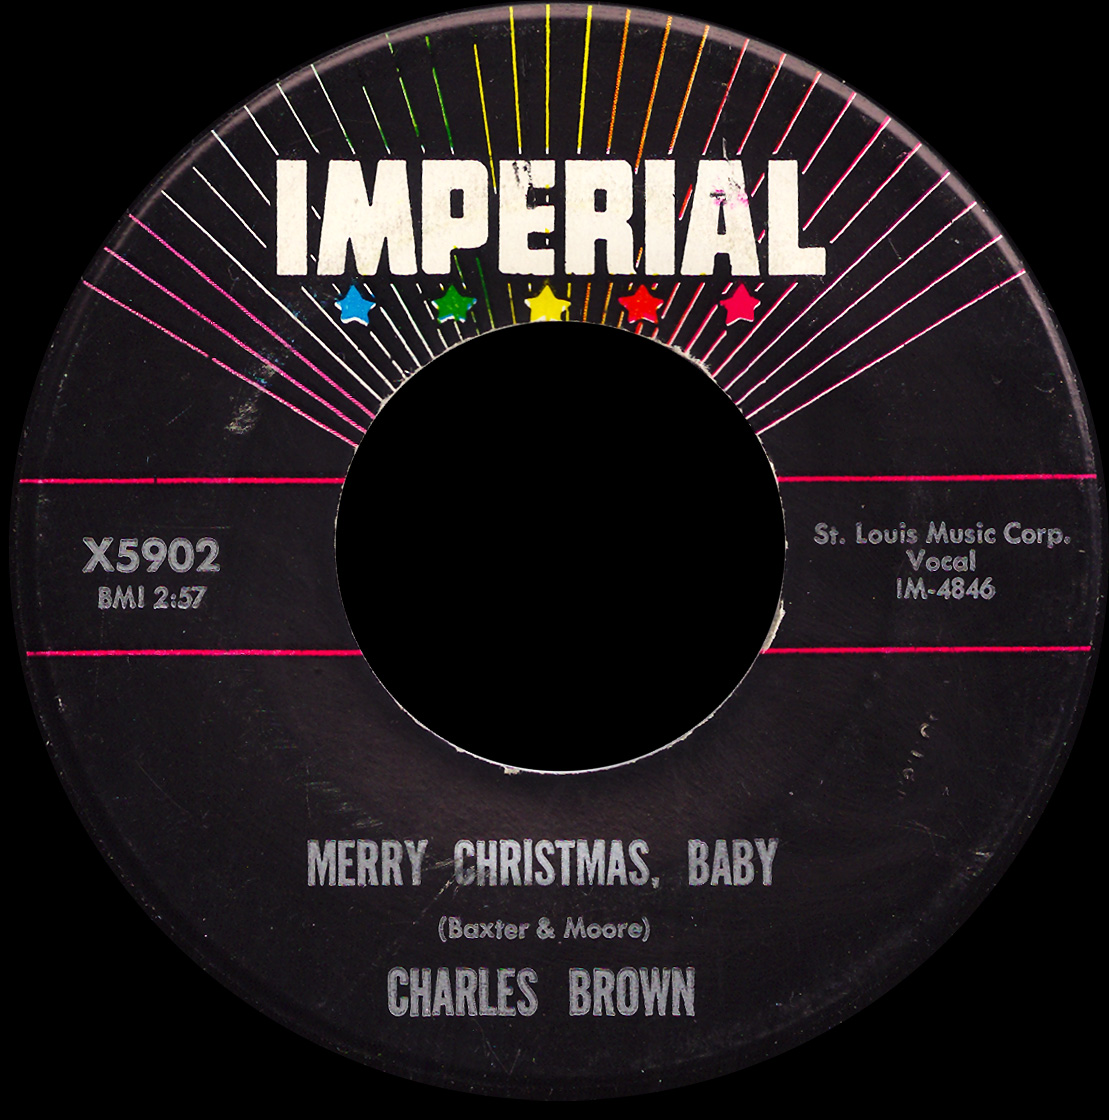 charles brown merry christmas baby imperial 5902